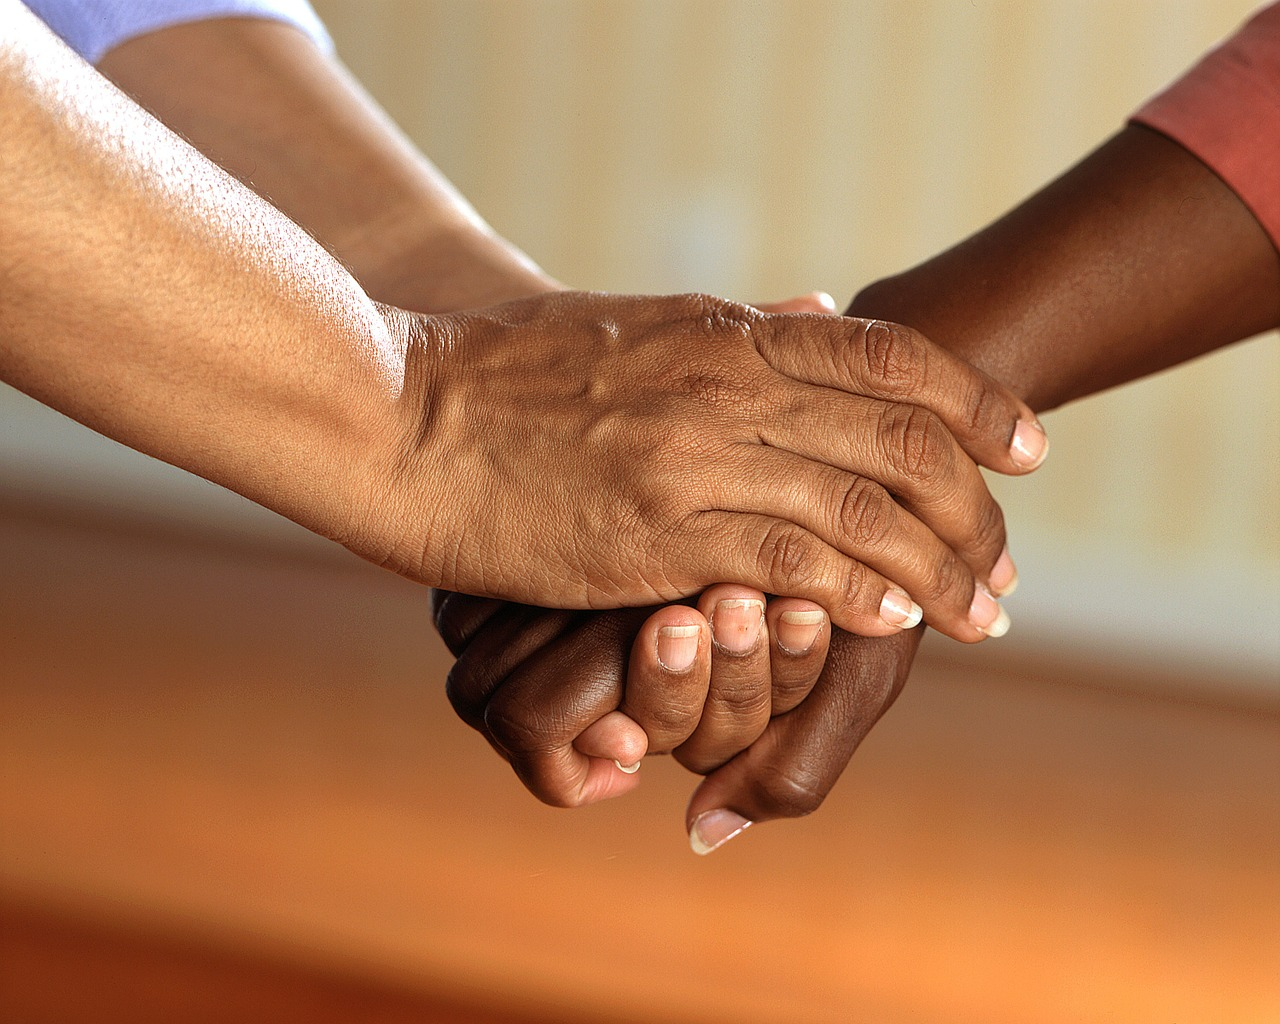 Caring for the Caregiver: The Powerful Benefits of a Helping Hand